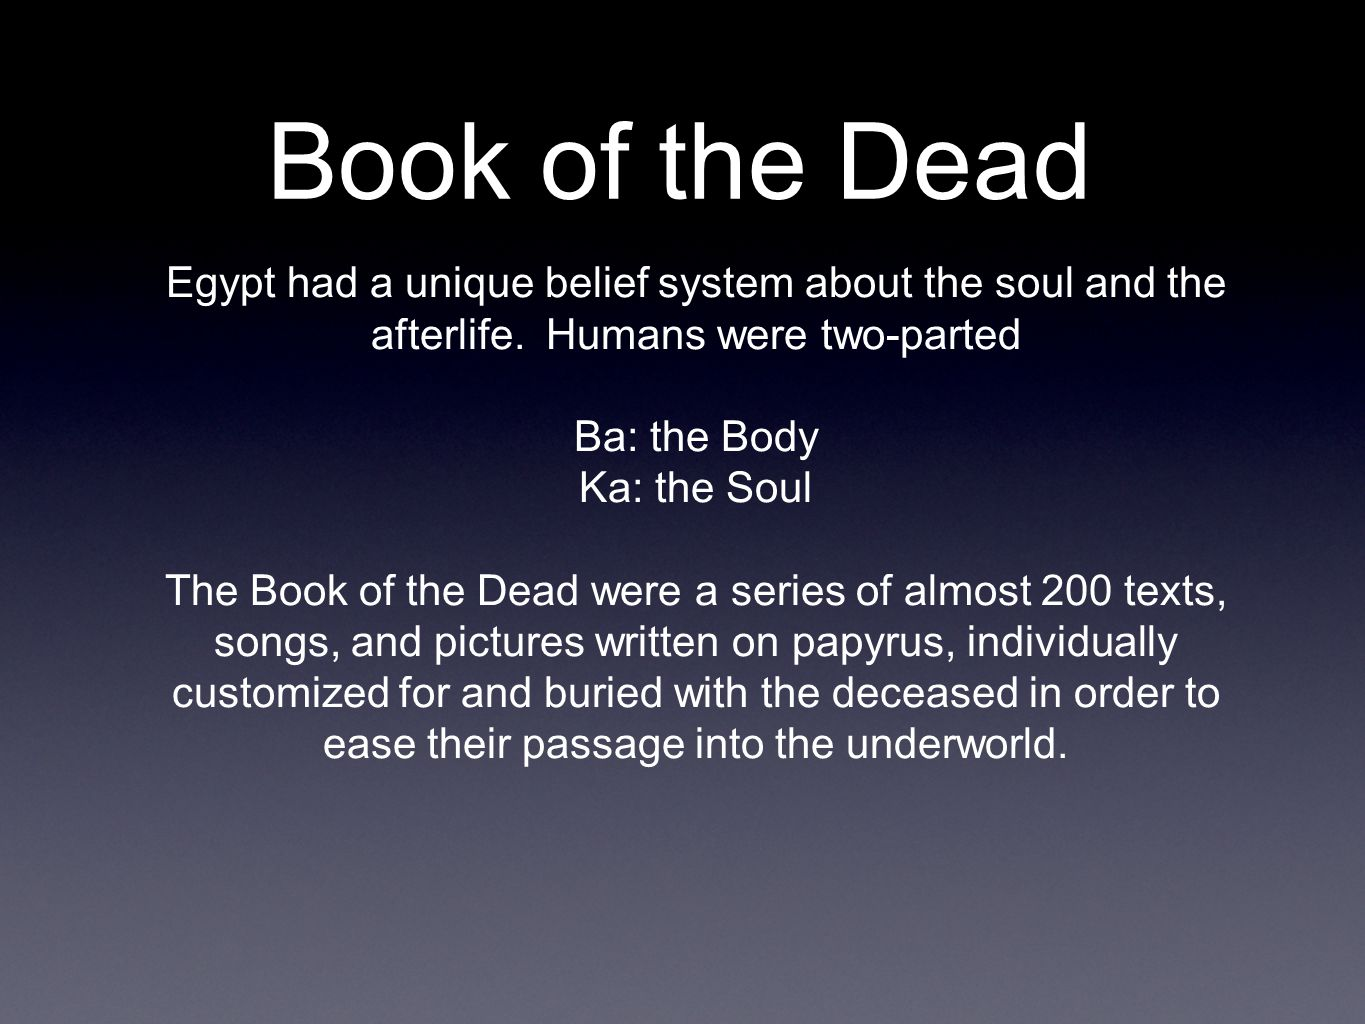 The Book of the Dead The intestines, lungs, liver, and the stomach were preserved separately and stored in Canopic Jars which were protected by the four sons of Horus.